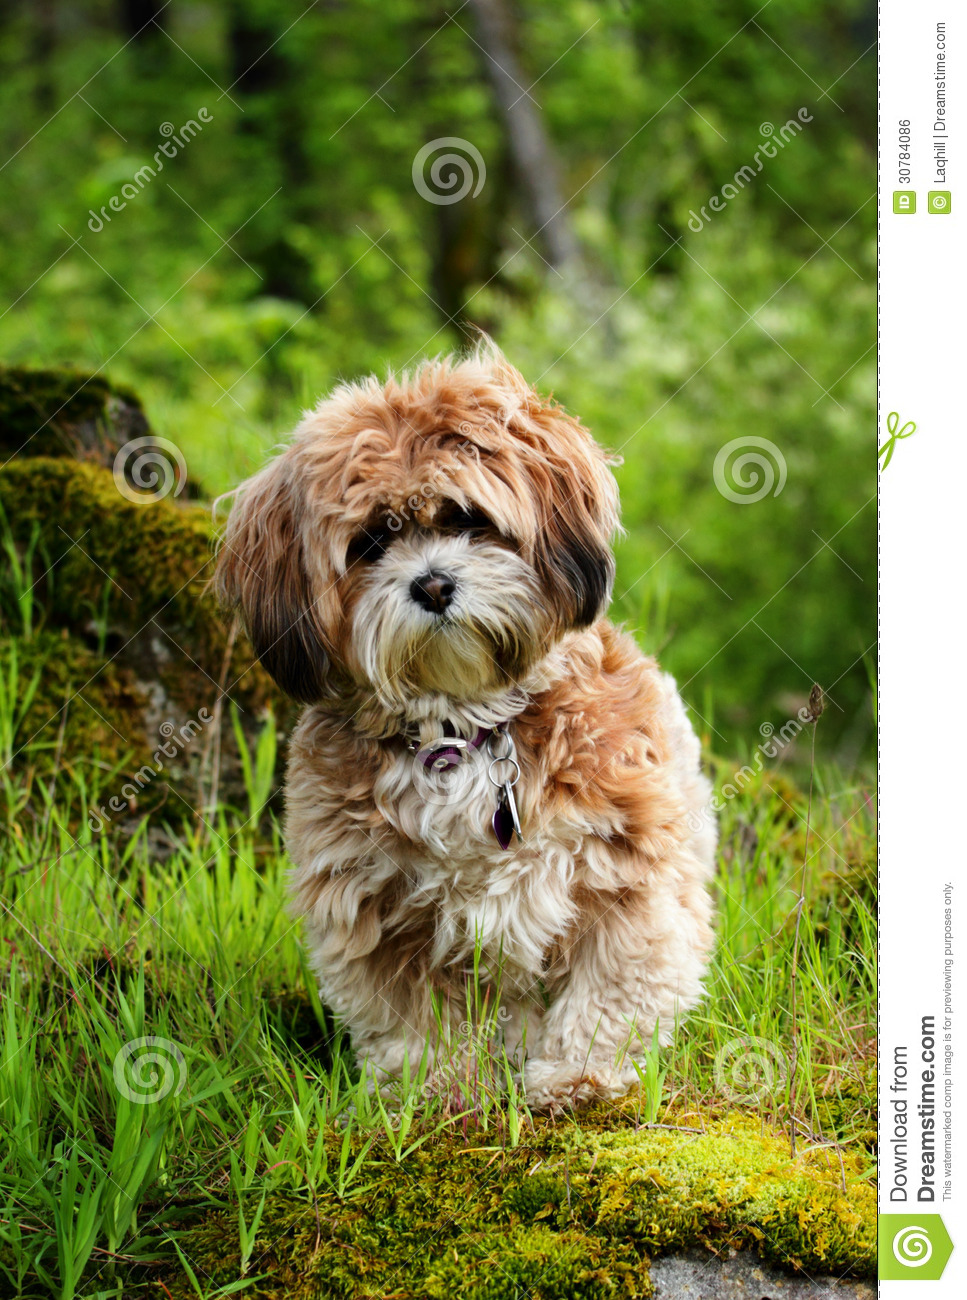 Pooch Royalty Free Stock Image - Image: 30784086